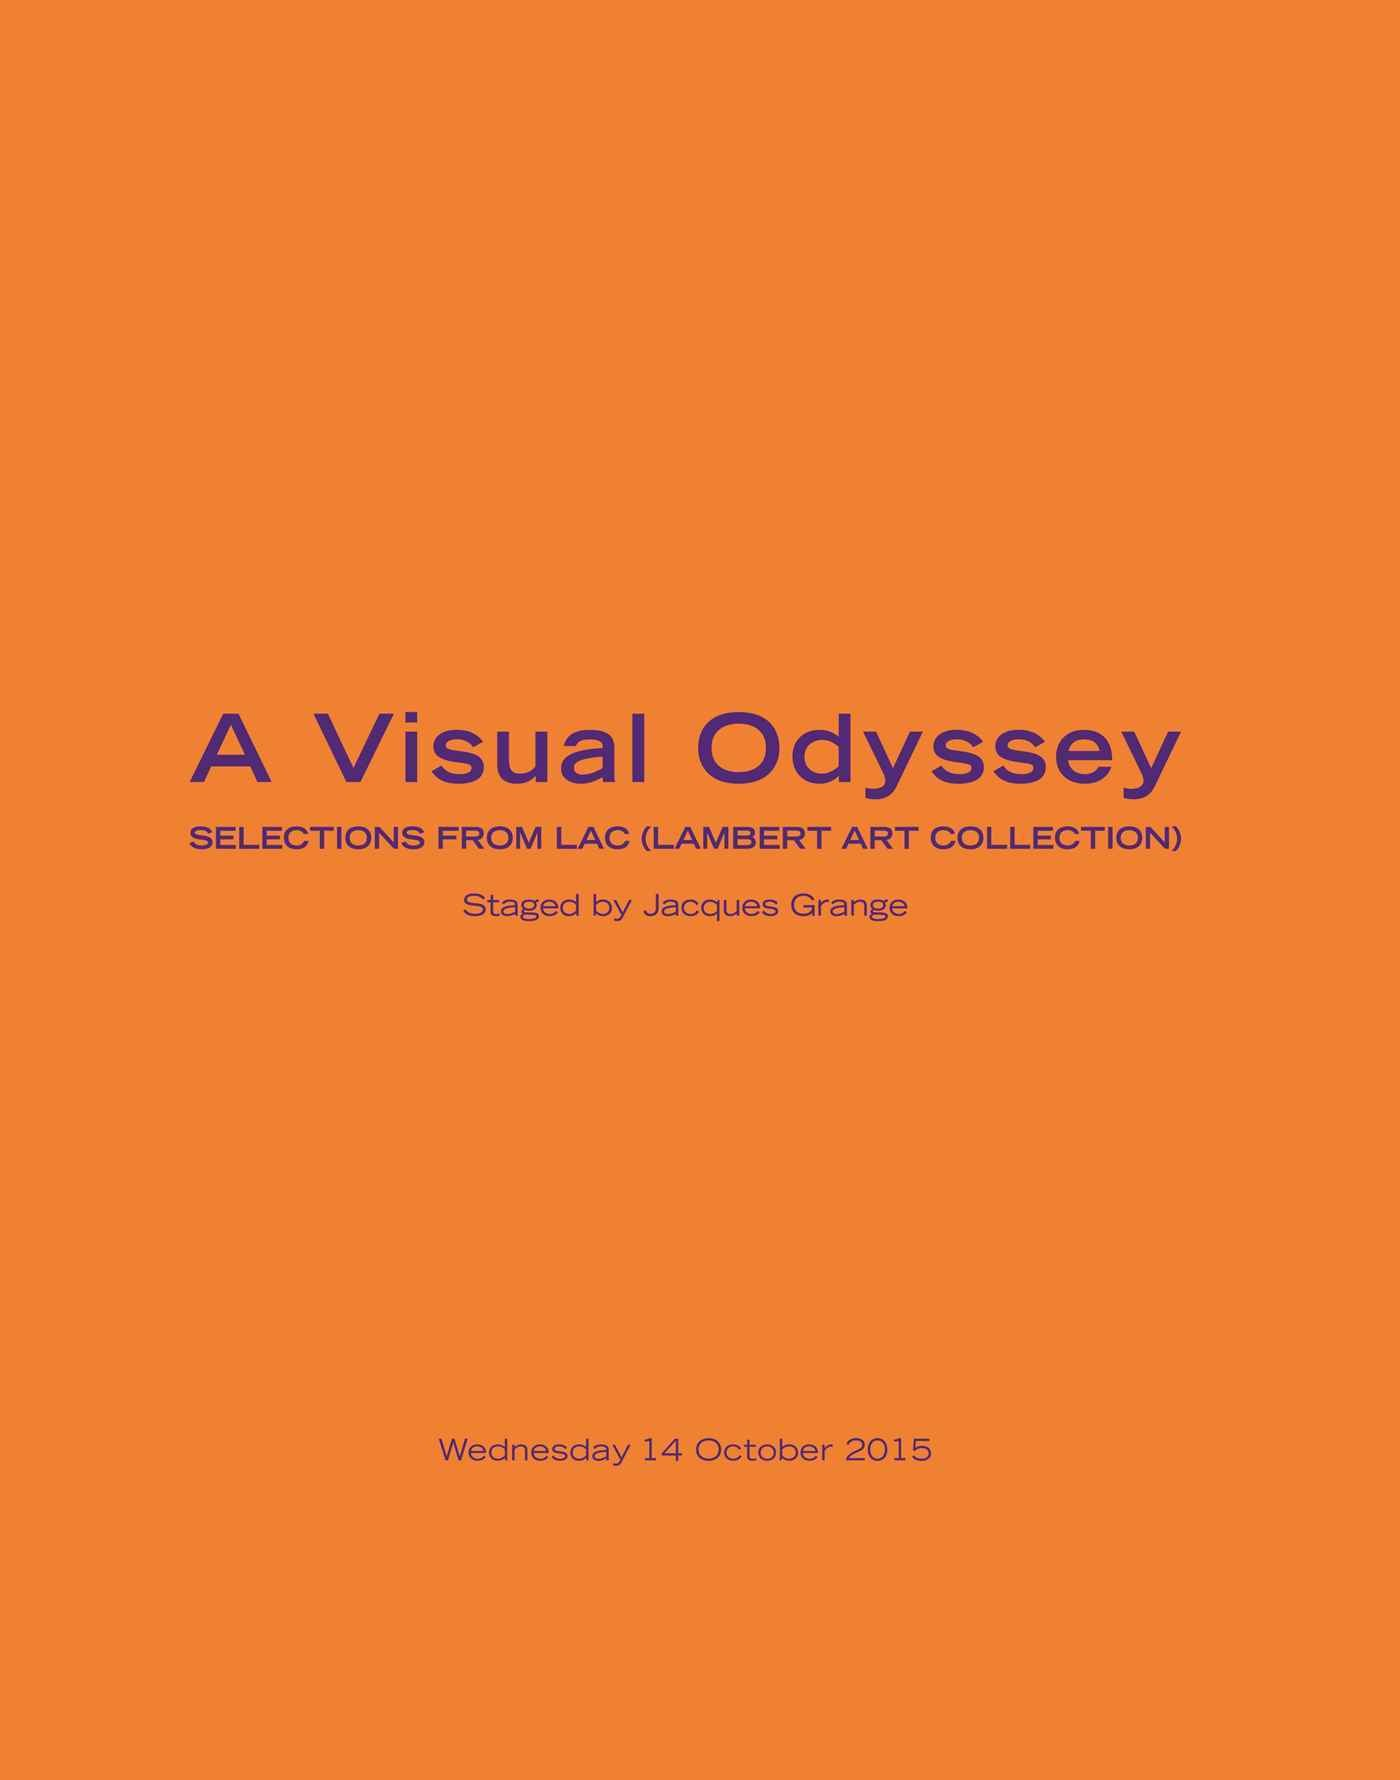 A Visual Odyssey Selections fr auction at Christies